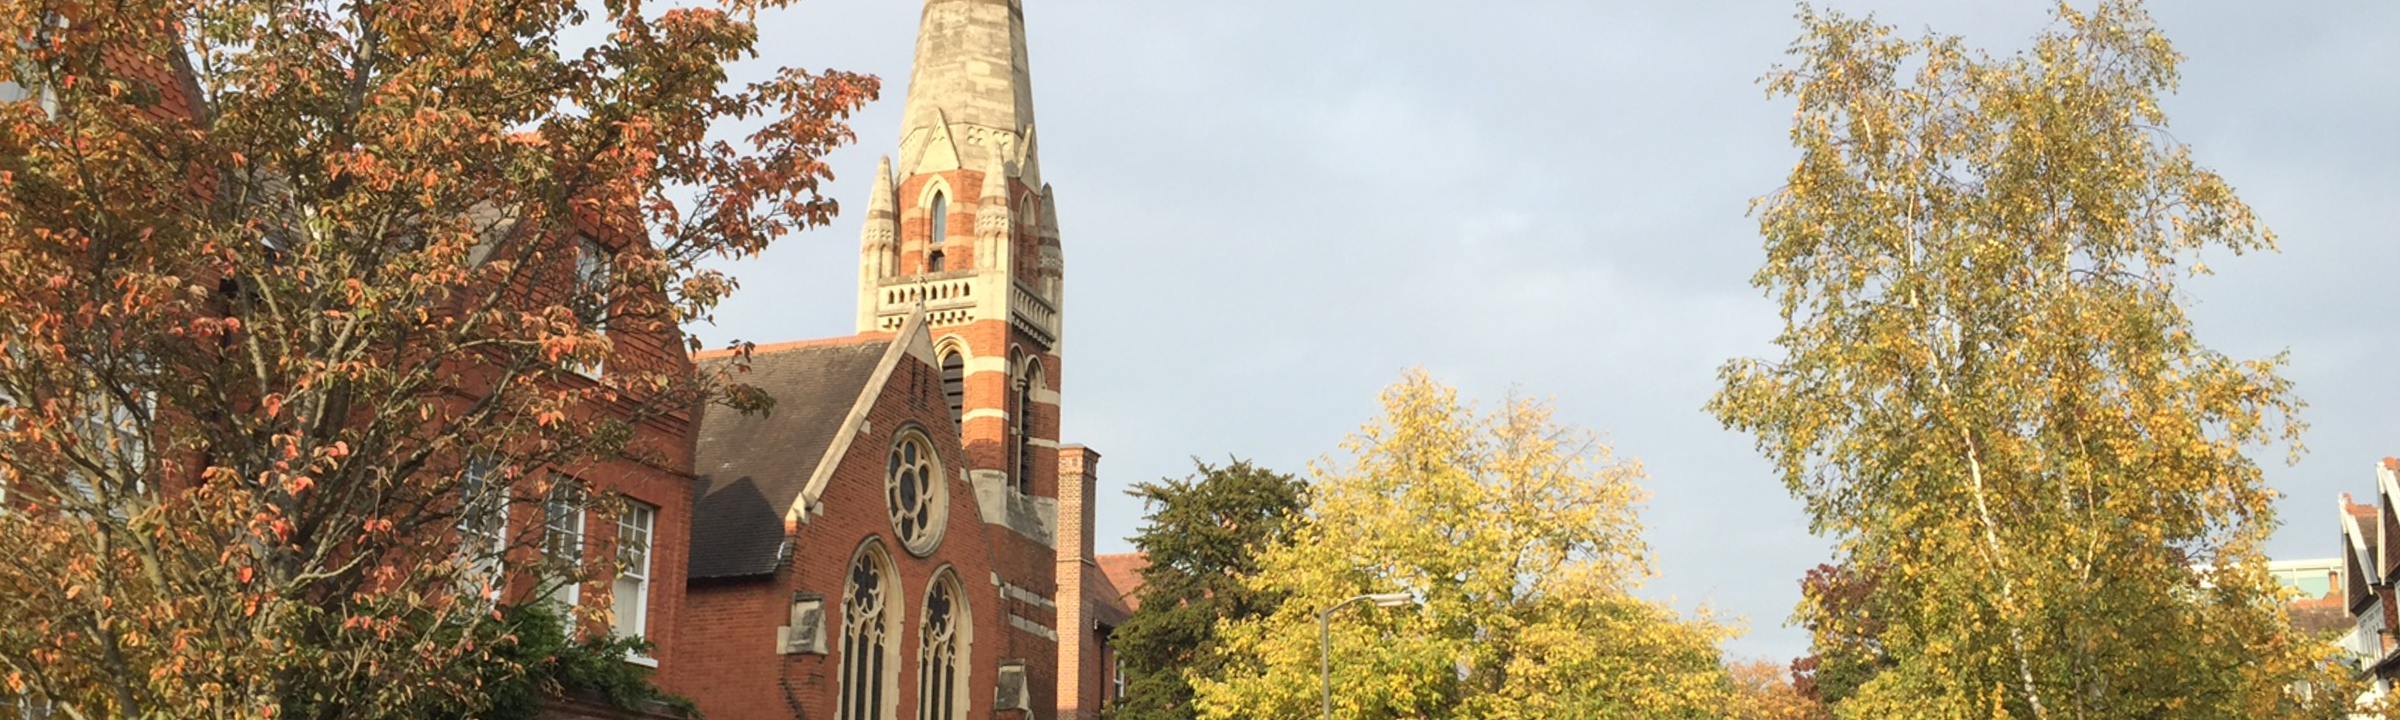 Trinity United Reformed Church in Wimbledon